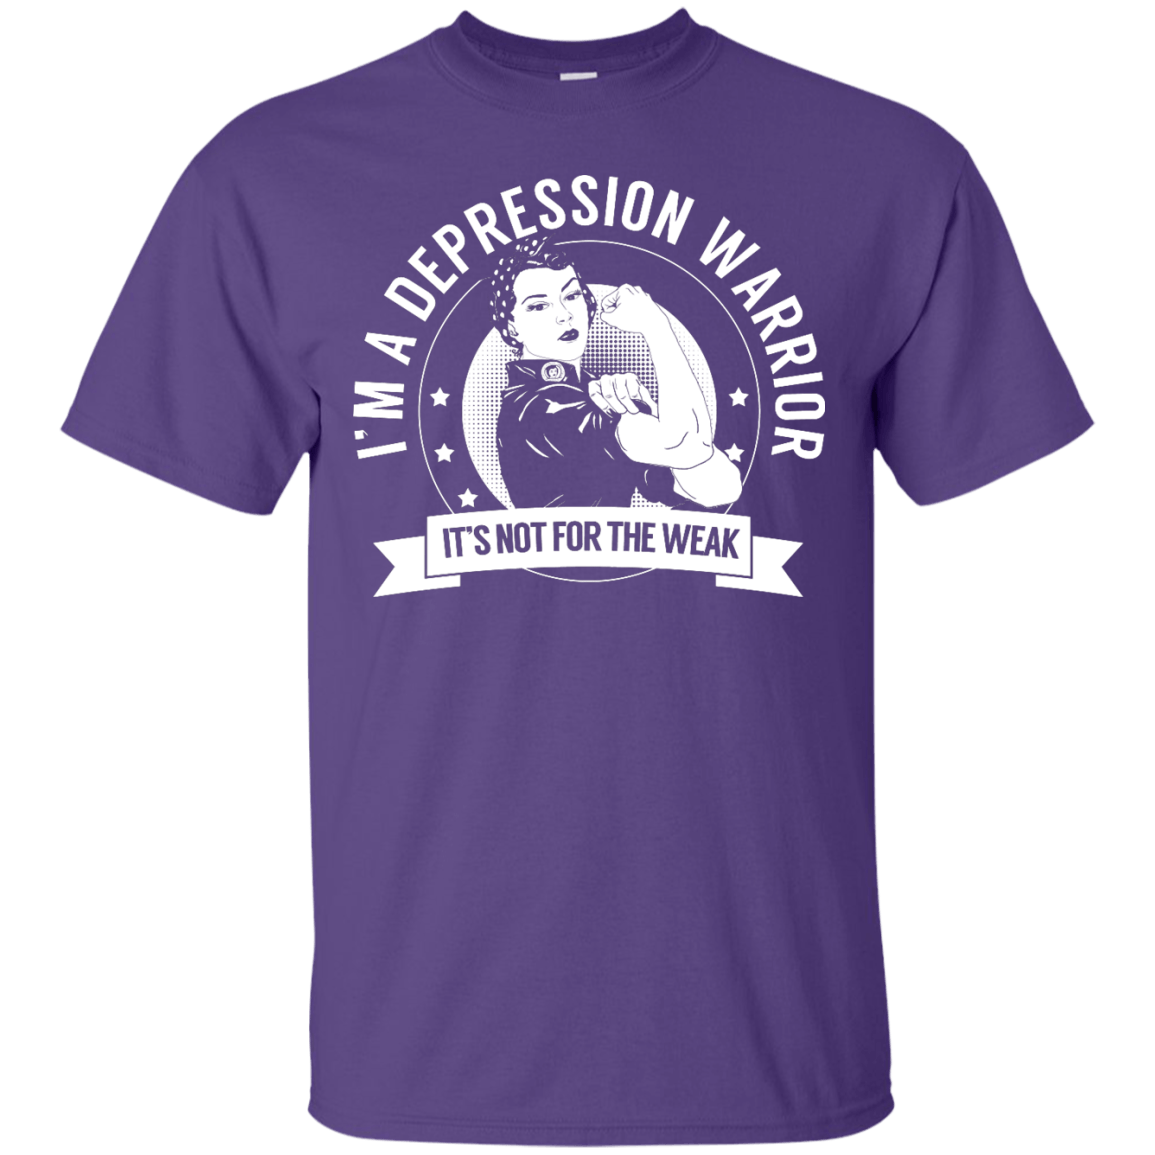 Depression Warrior Not for the Weak Unisex Shirt - The Unchargeables